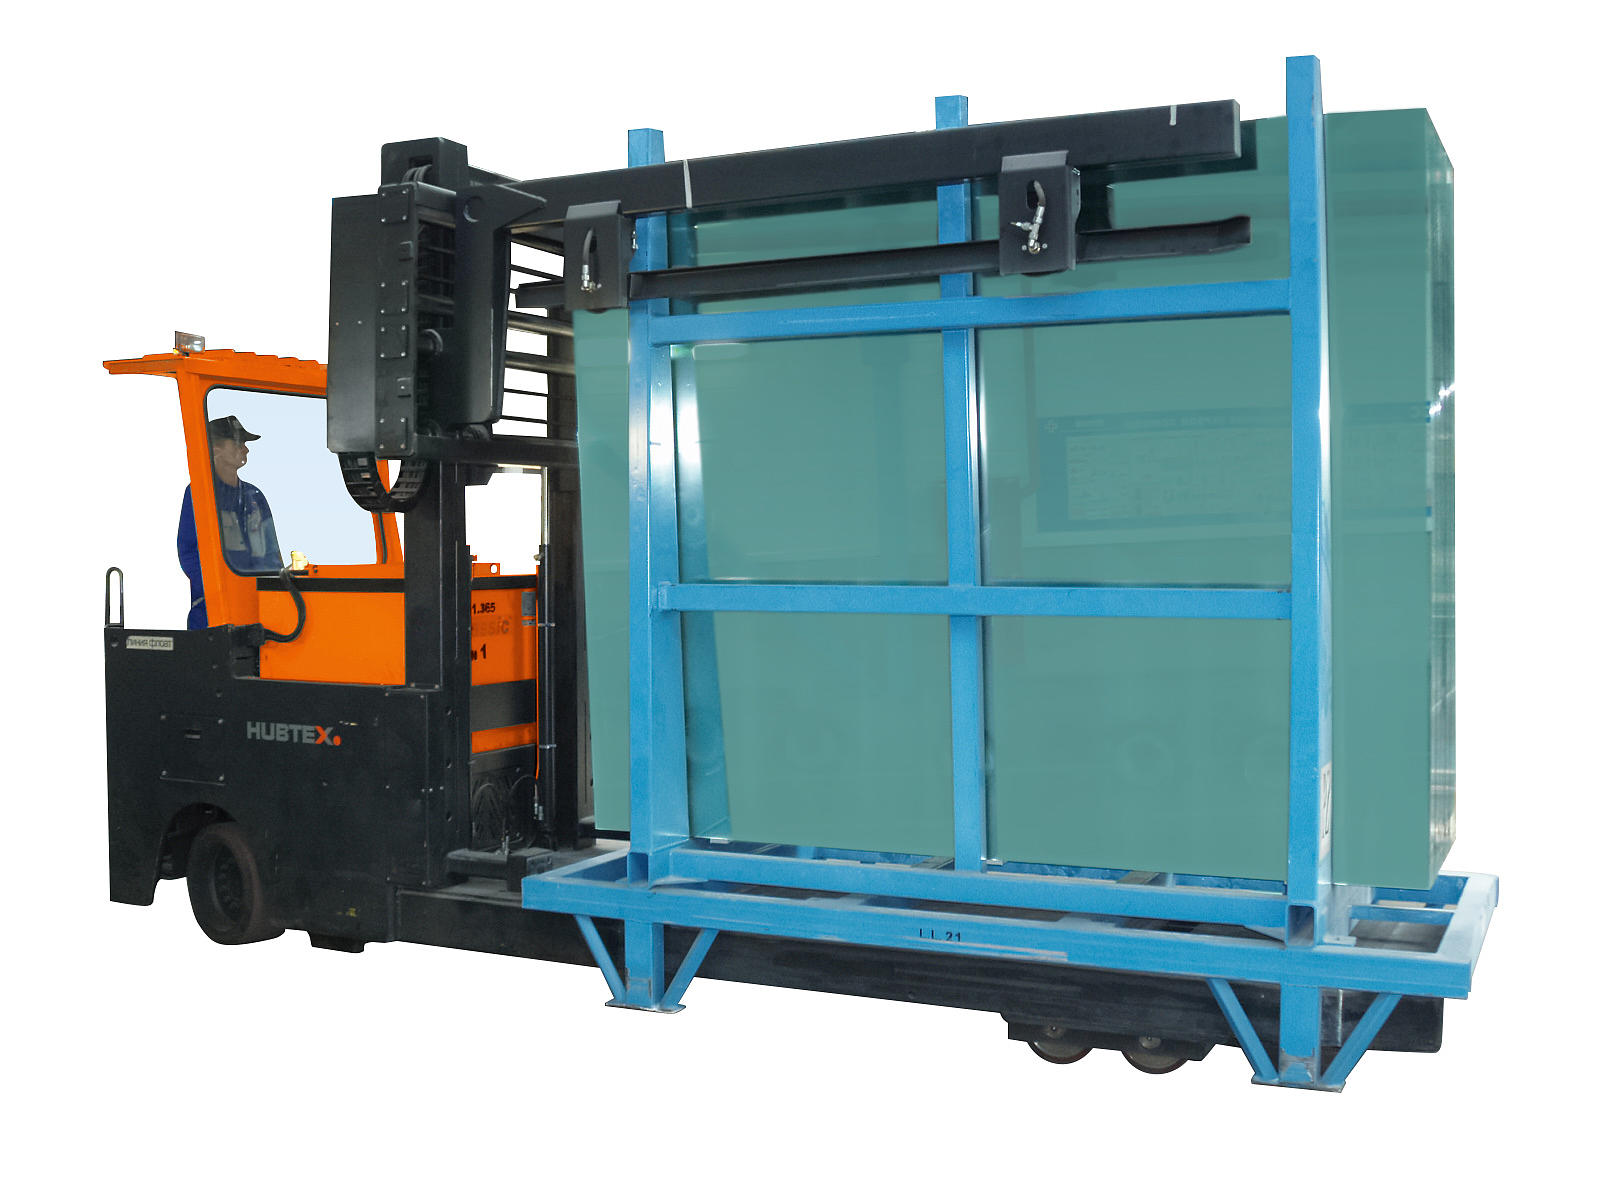 GTT glass frame transporter in HUBTEX handling process